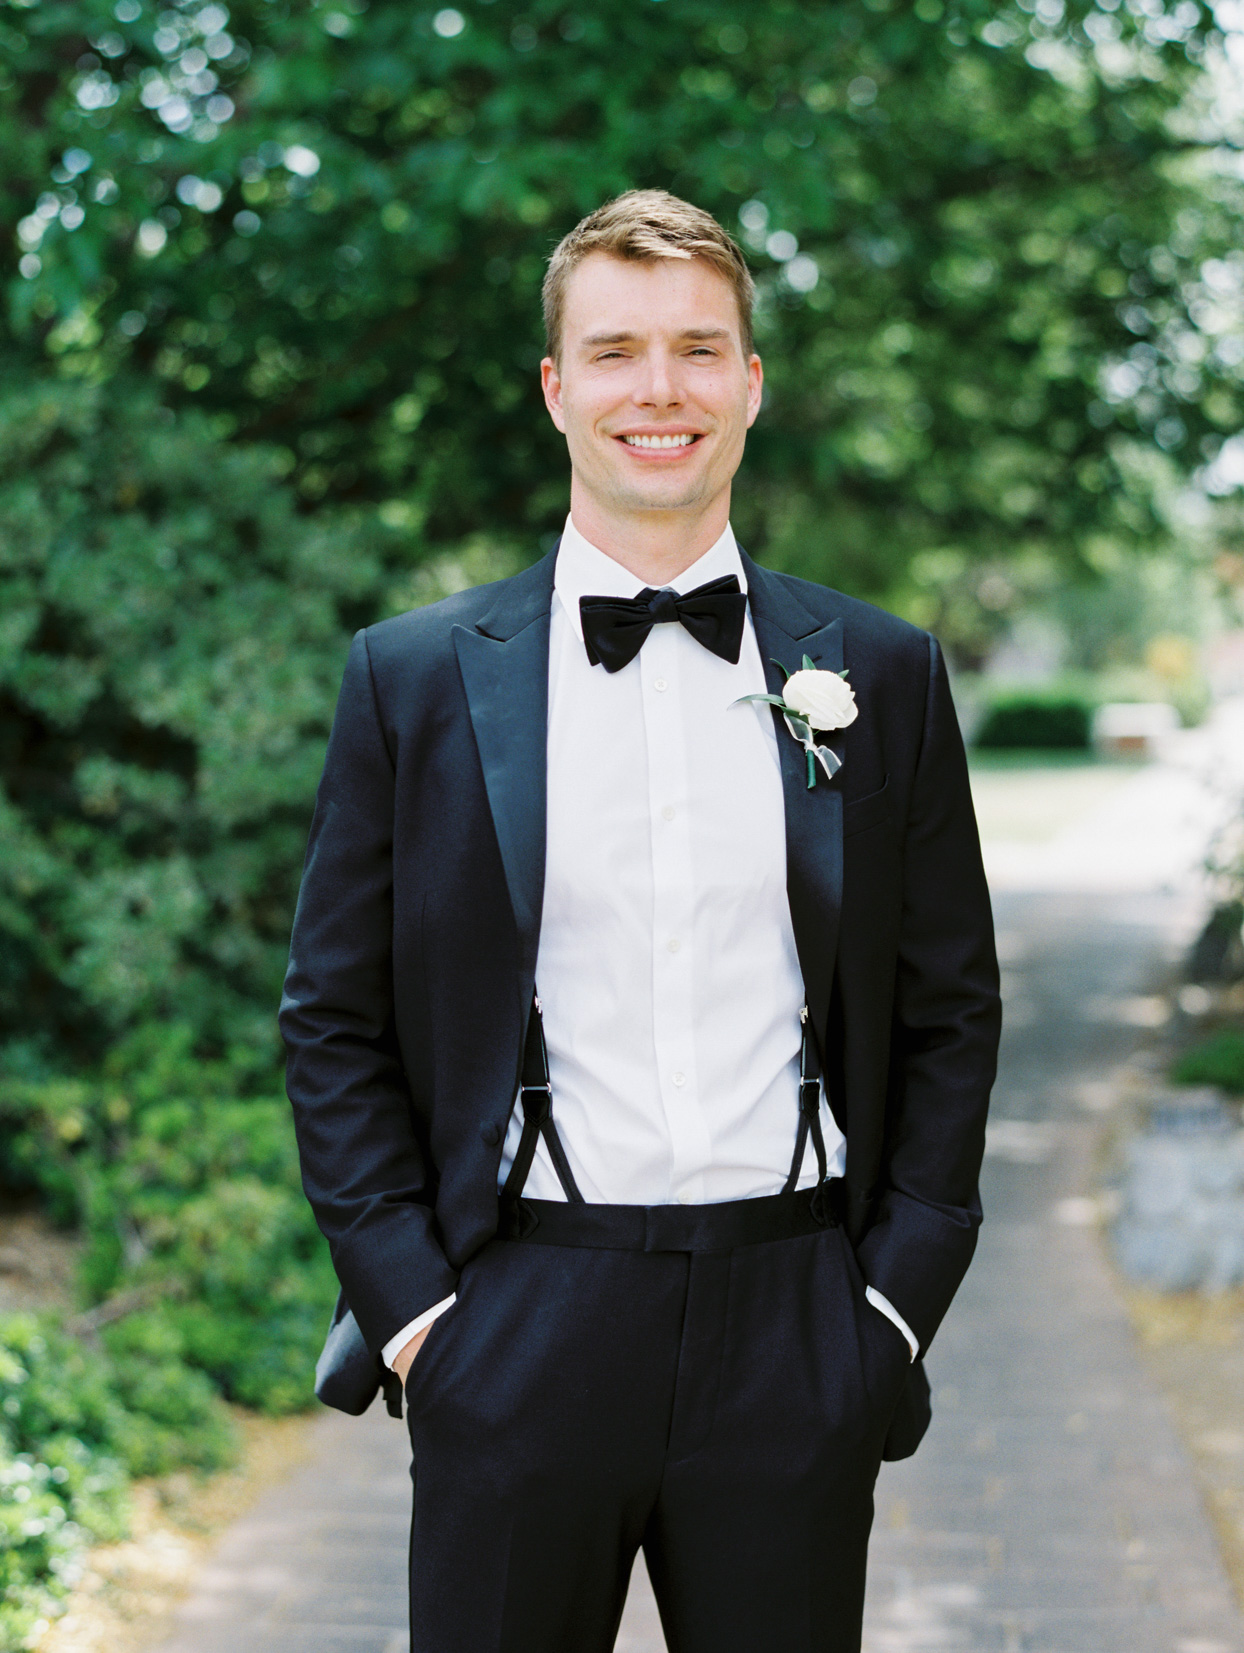 groom smiling wearing black and white suit